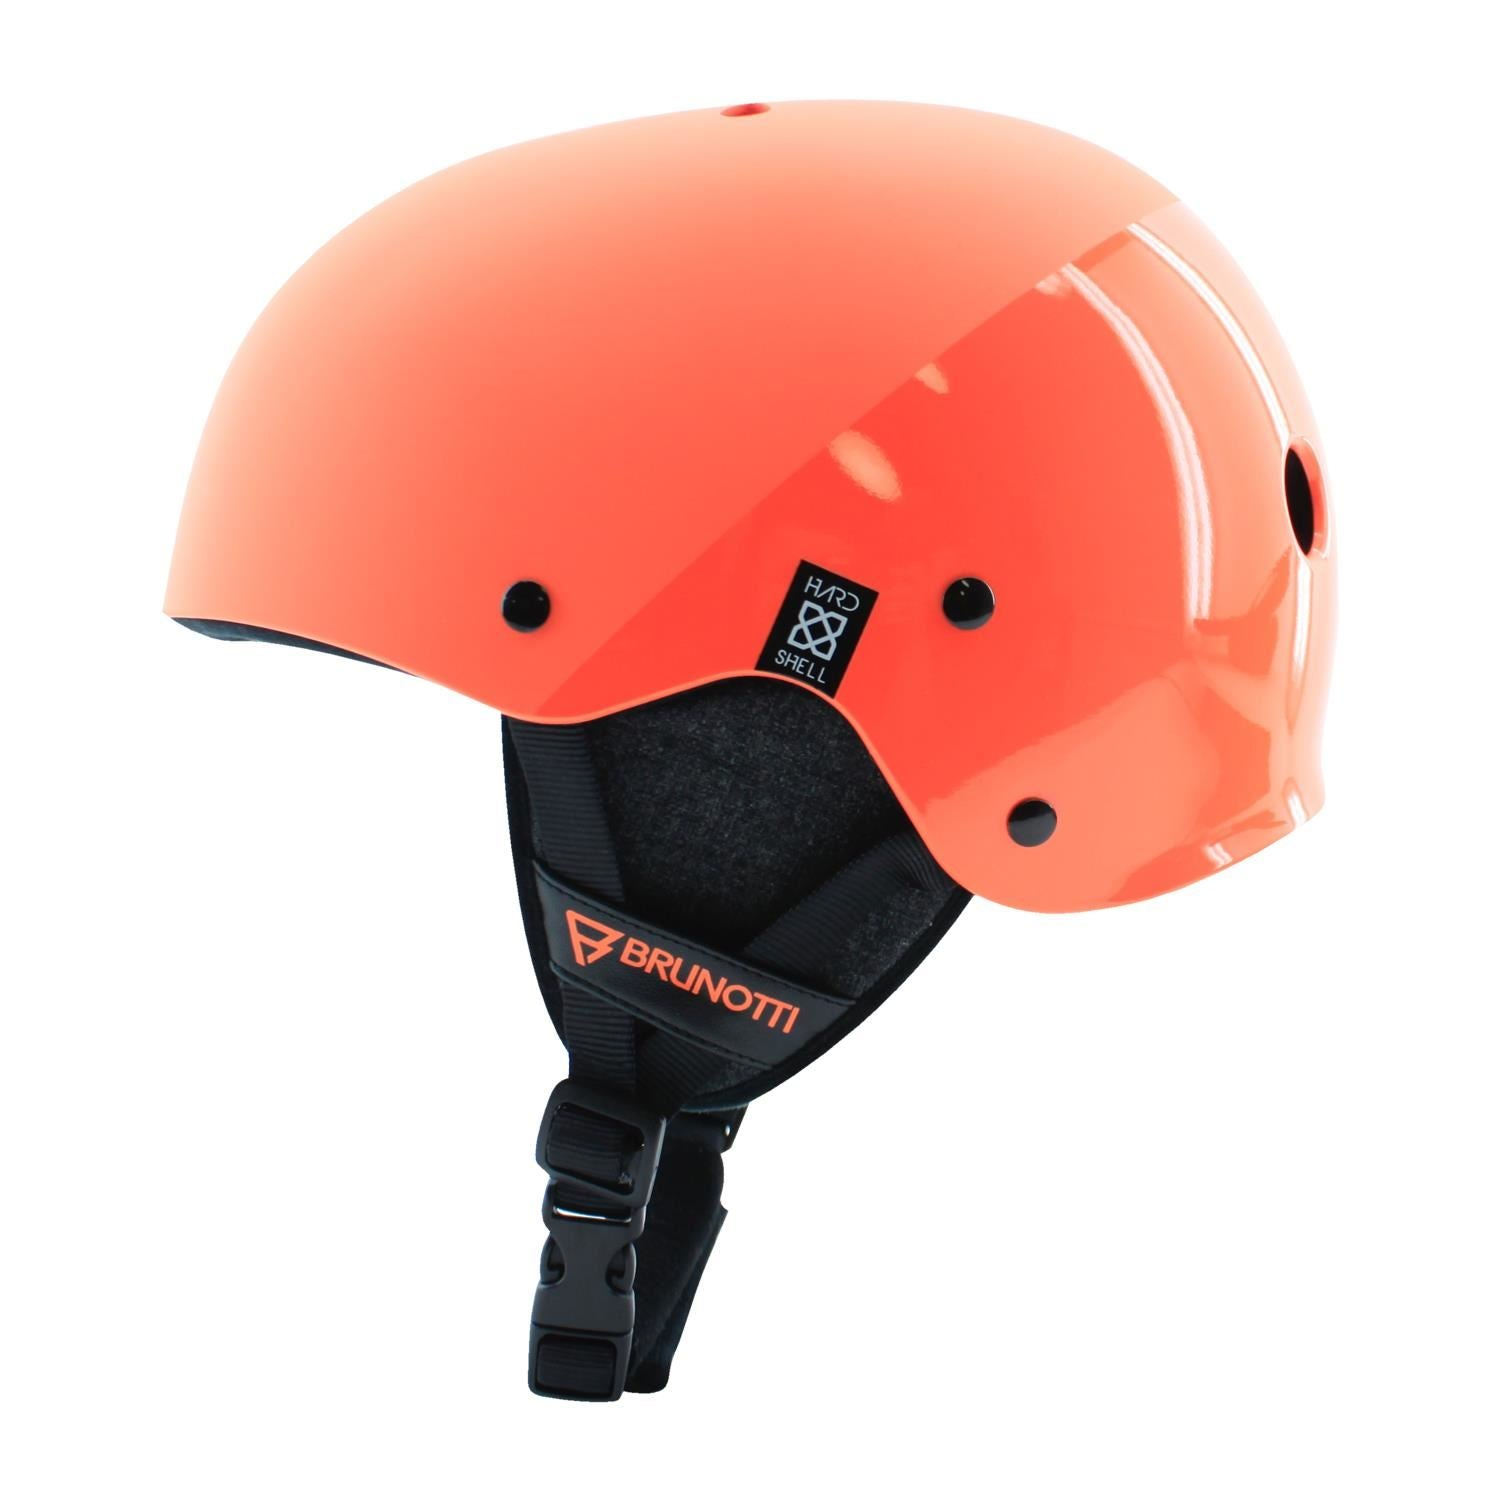 BRUNOTTI BRAND HELMET CORAL - Guincho Wind Factory